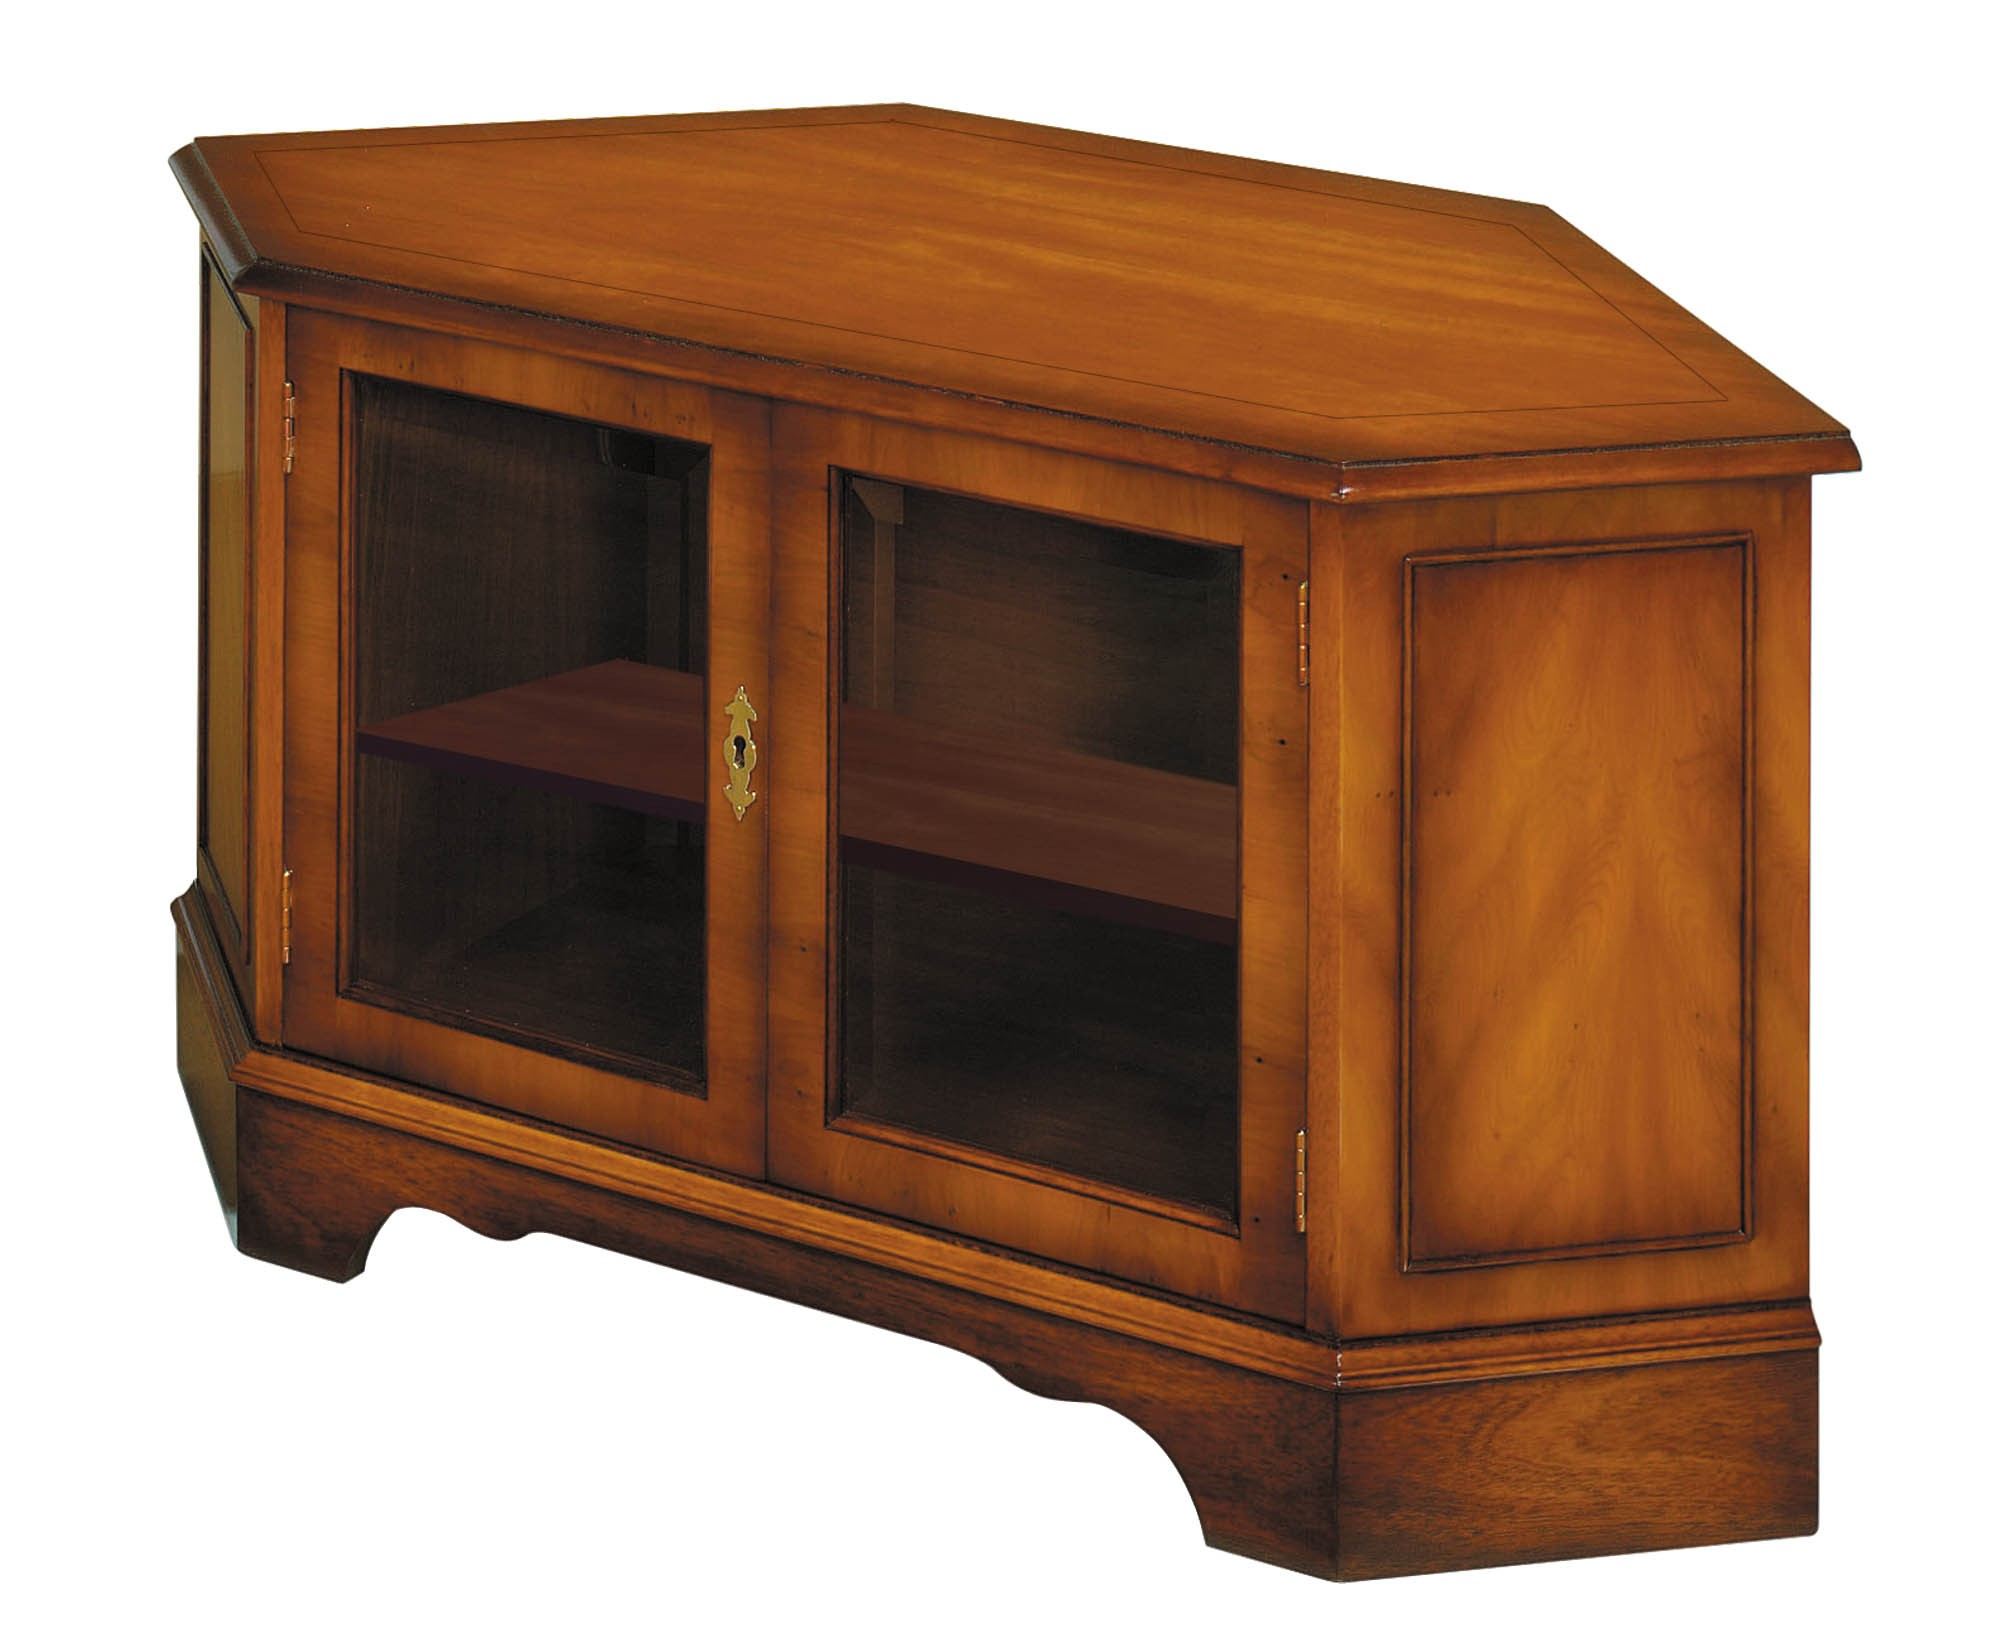 Tr Hayes – Furniture Store, Bath Intended For Mahogany Corner Tv Stands (View 18 of 20)